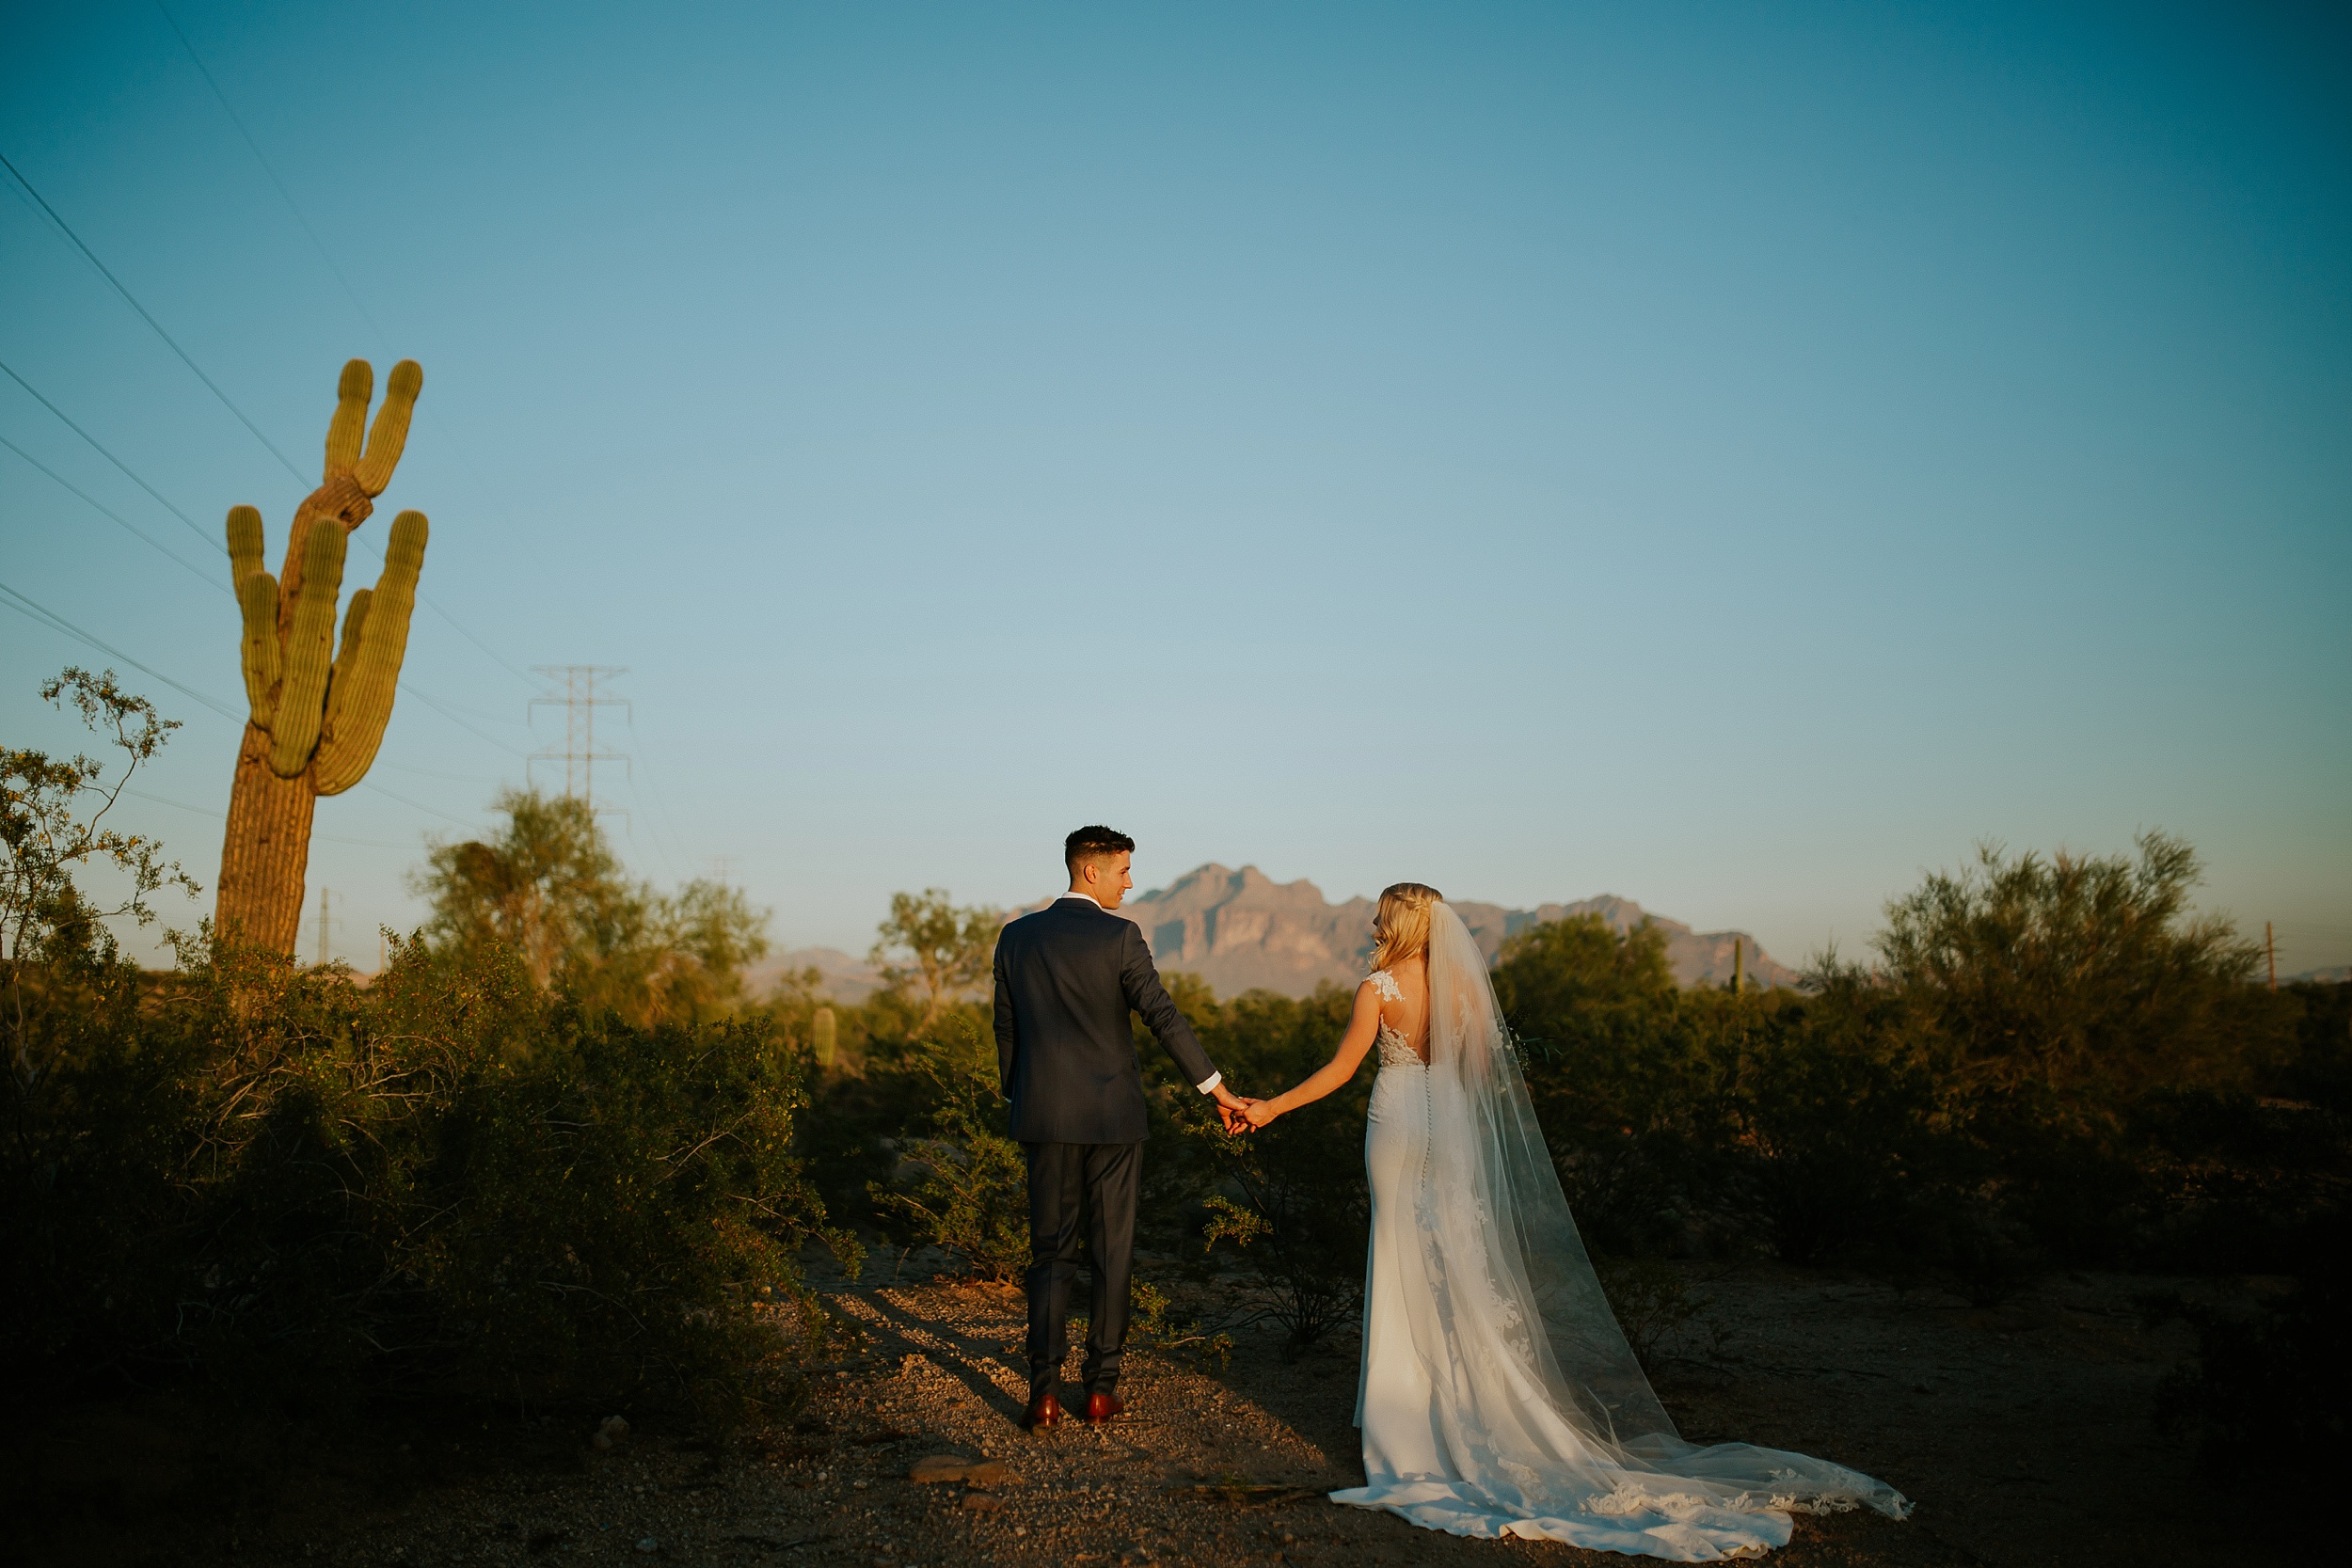 Meg+Bubba_Wedding_Bride+Groom_Portraits_Arizona-166.jpg